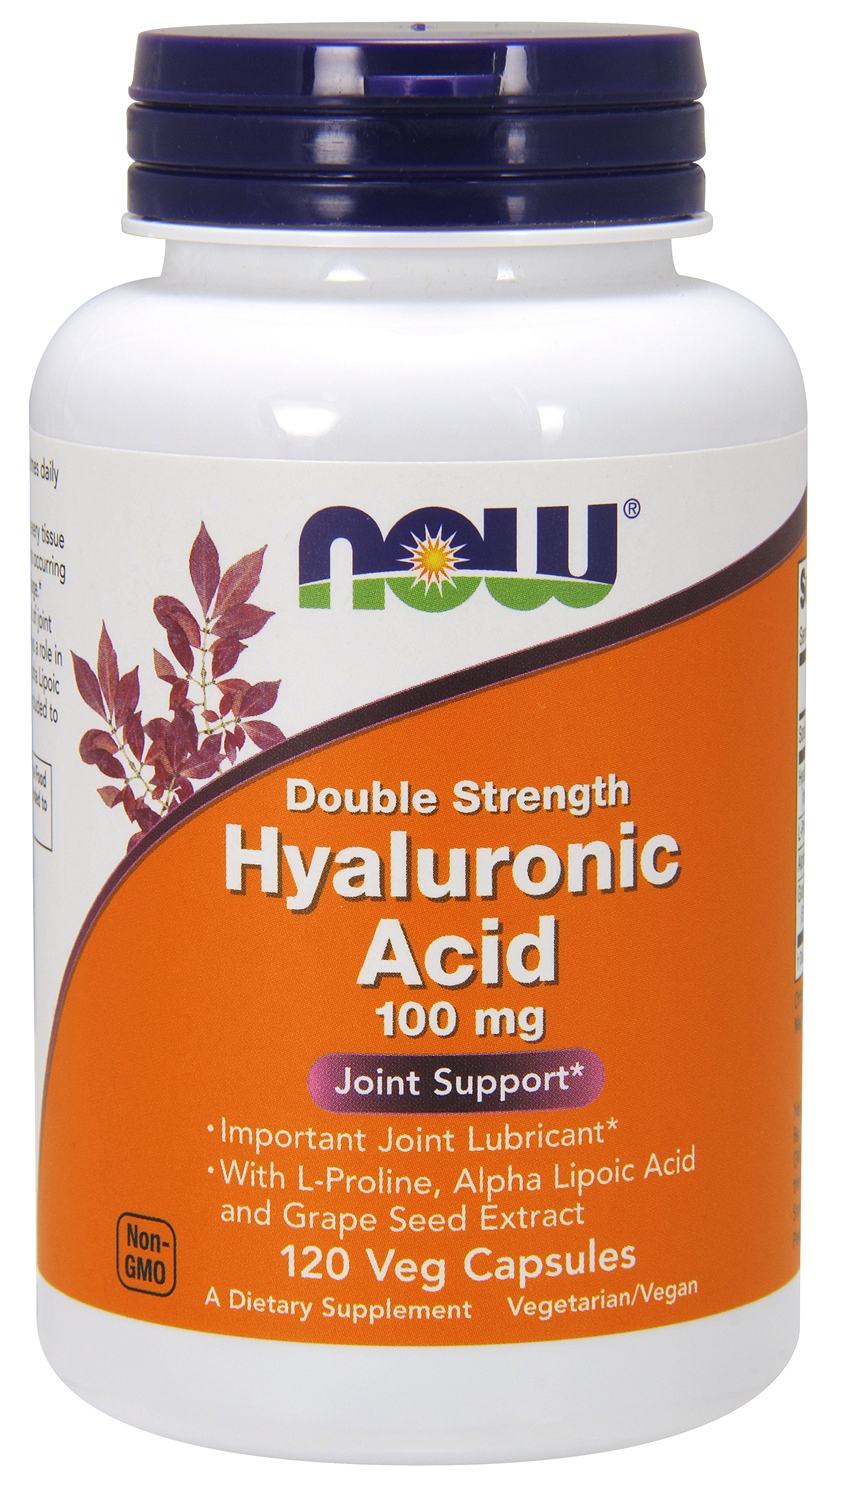 Hyaluronic Acid Double Strength 100 mg 120 Veg caps by NOW Foods